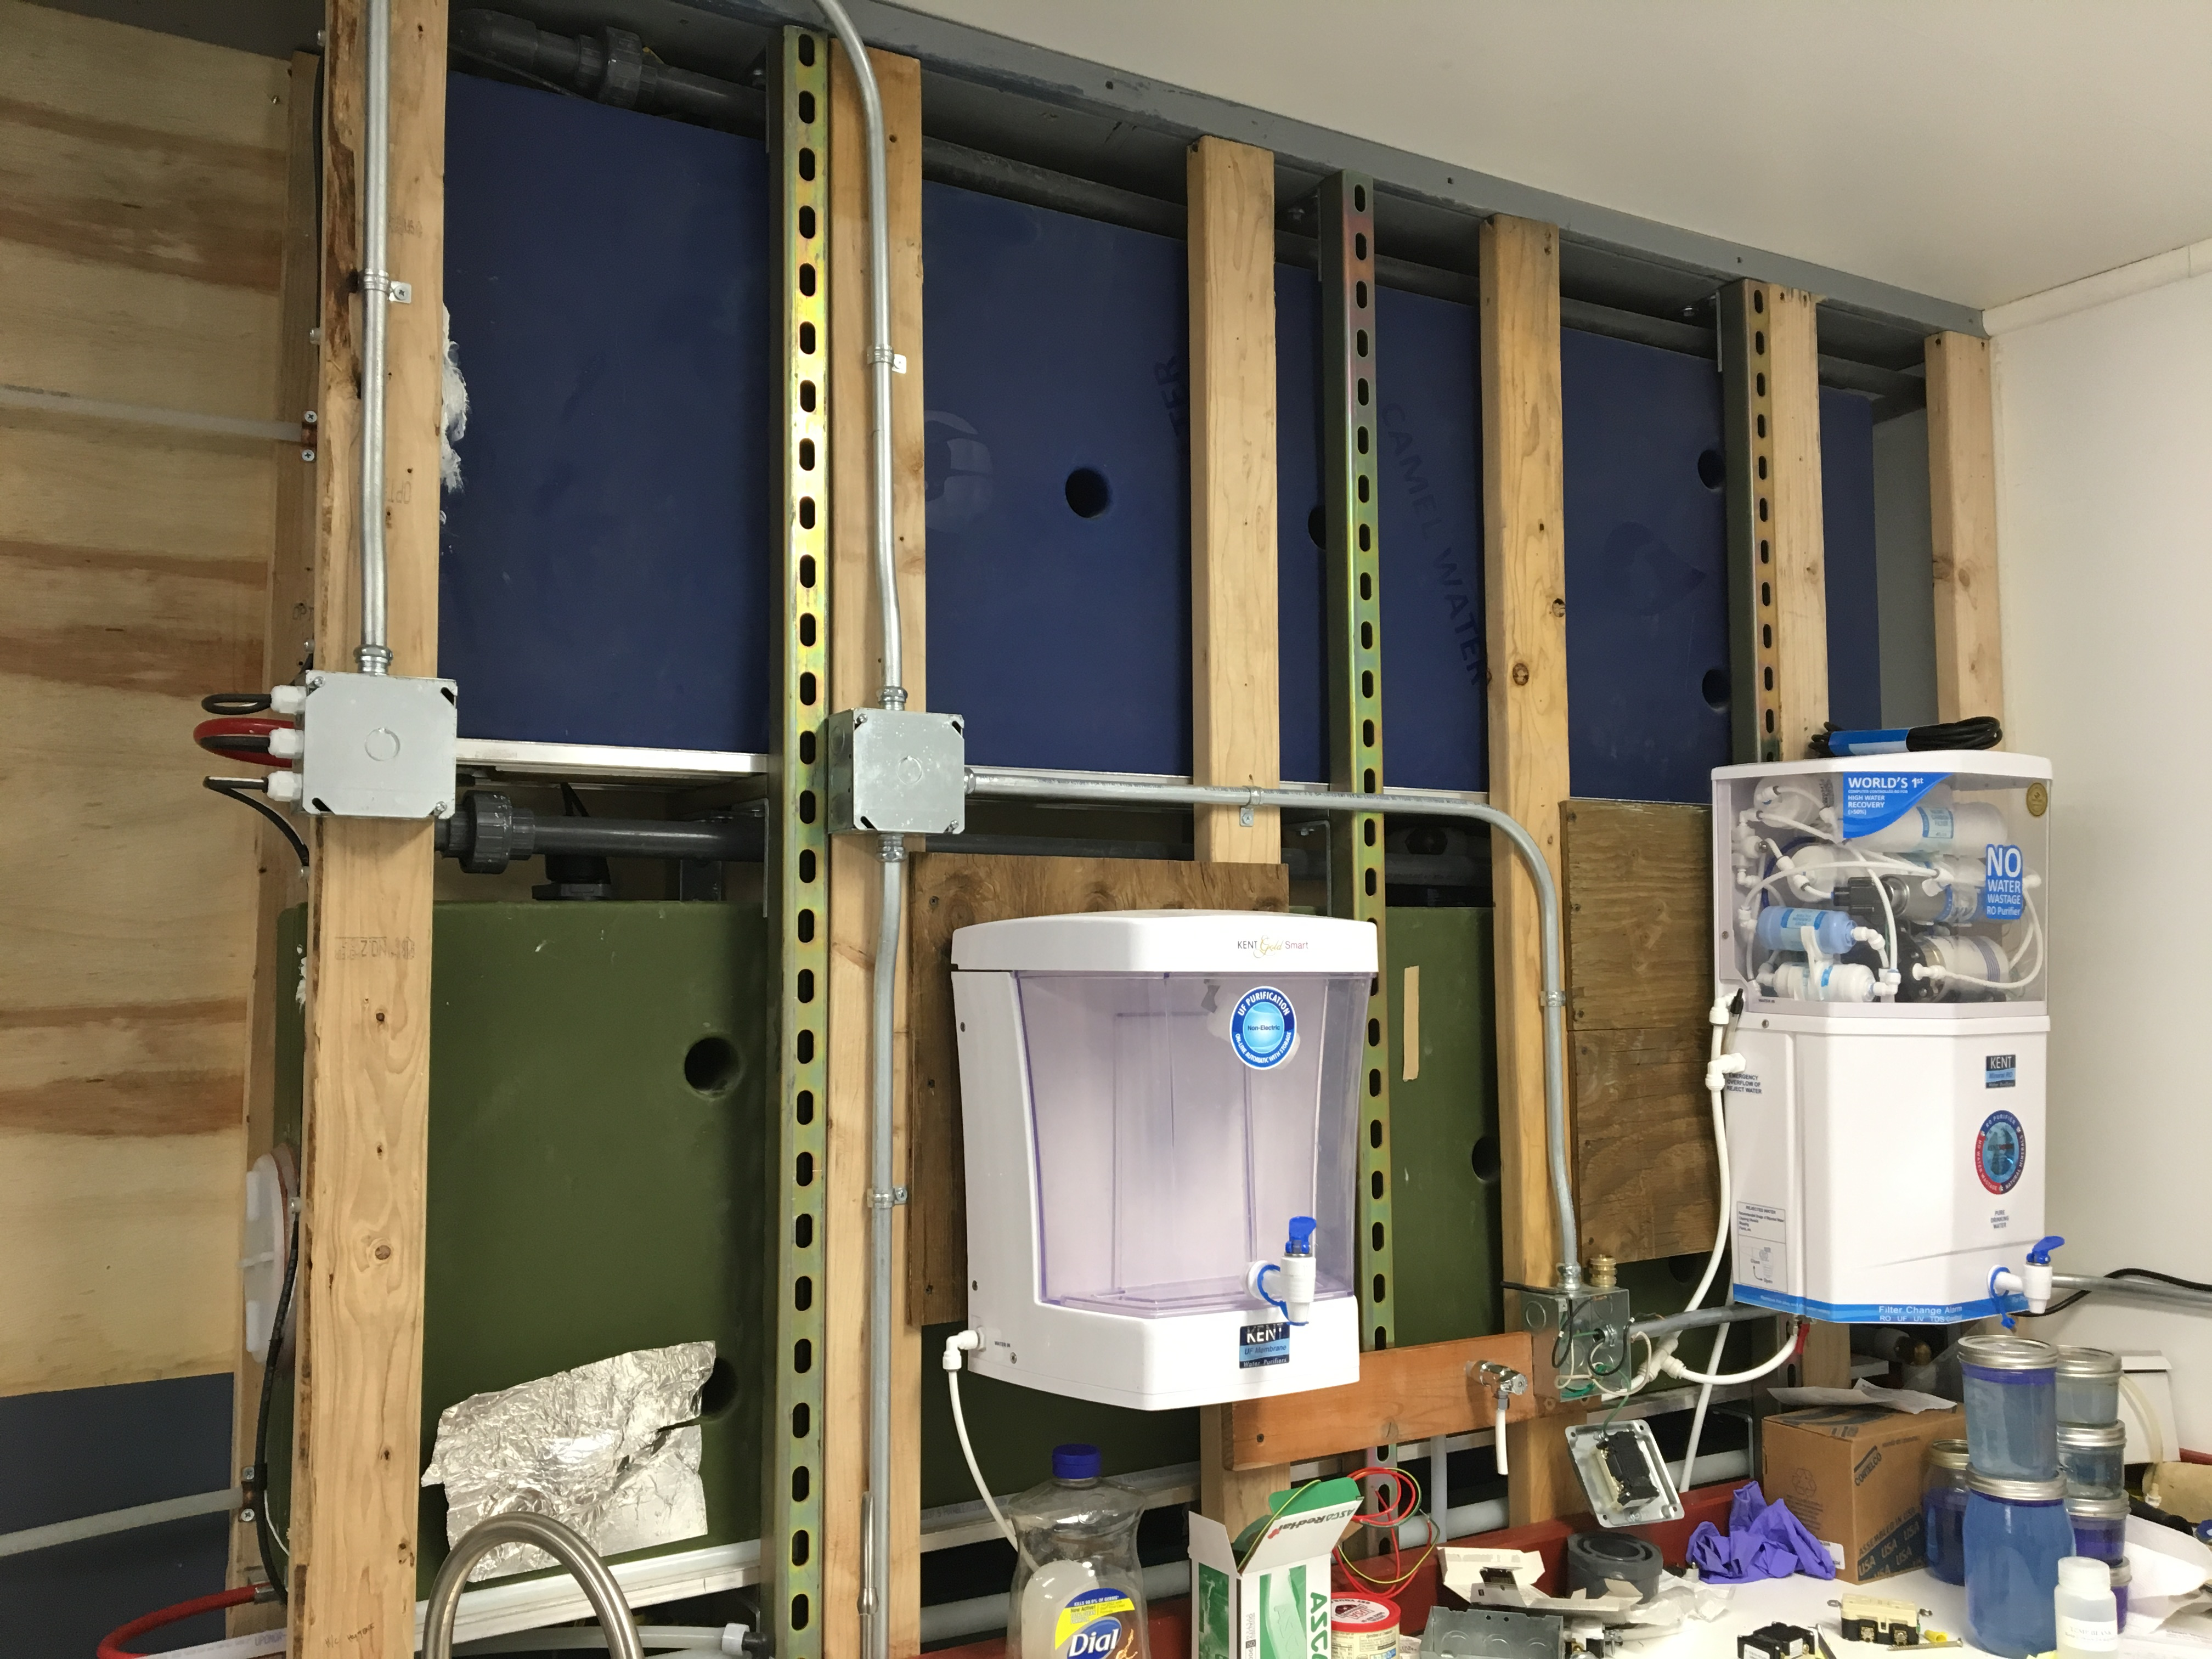 Our Solution Camel Washing Machine Wiring Diagram The Tanks Fit Inside Of Plumbing Wall Blue Tank Is For Treated Water Green Stores Untreated From Rain Lake Or Ice Melt